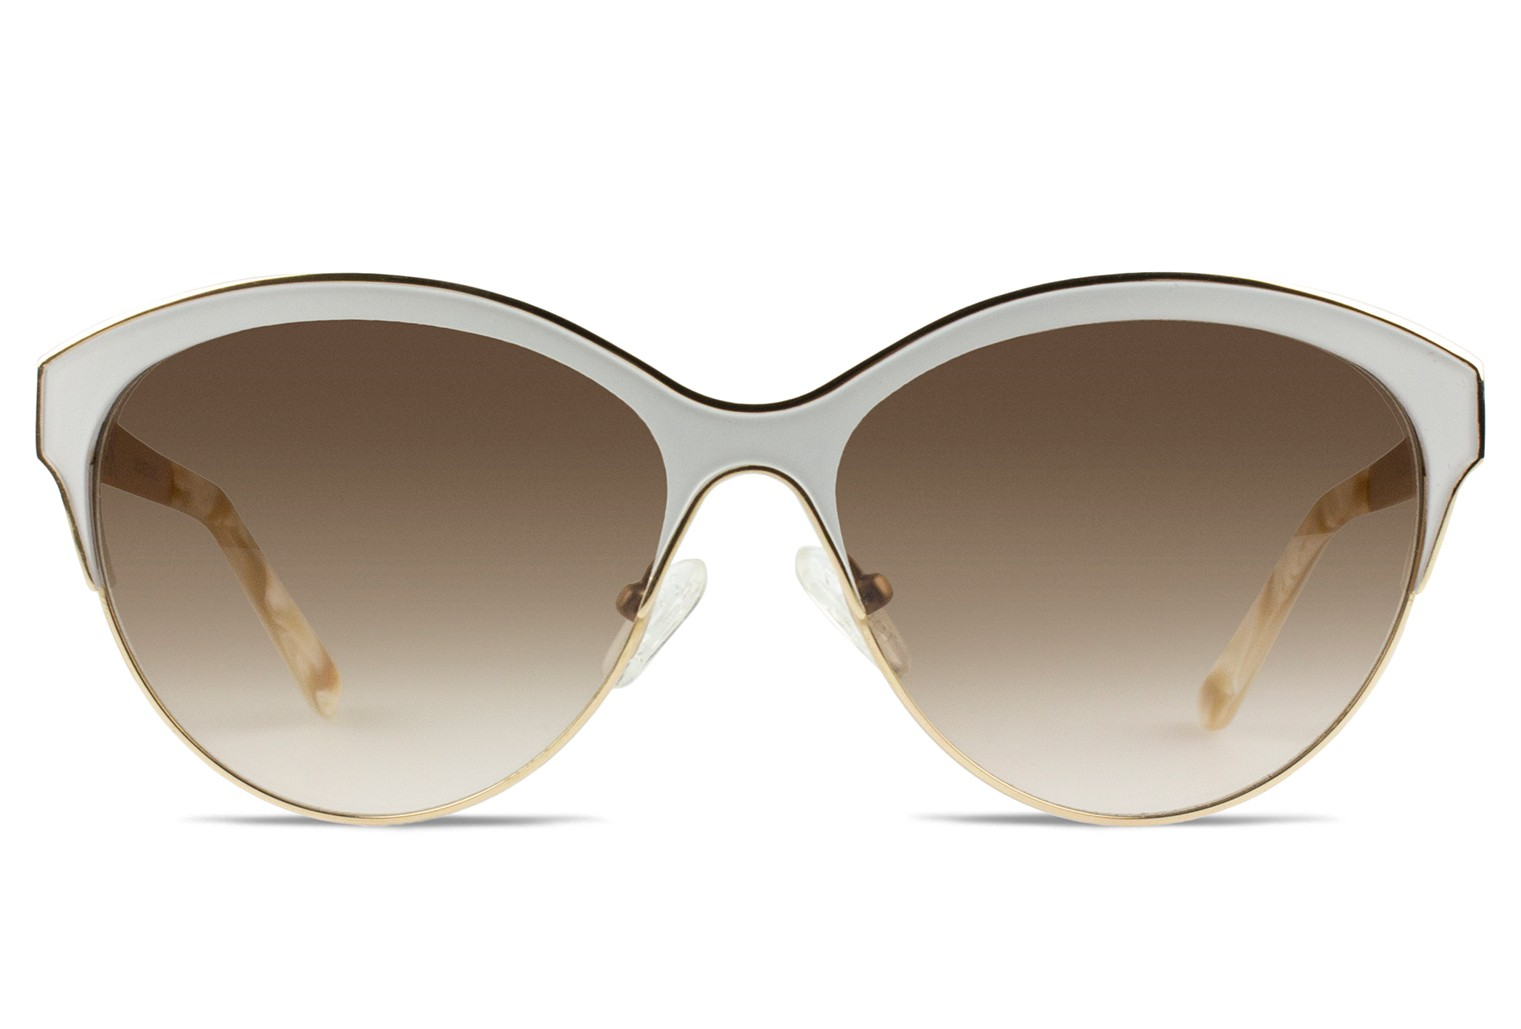 vint-and-york-sunglasses-15